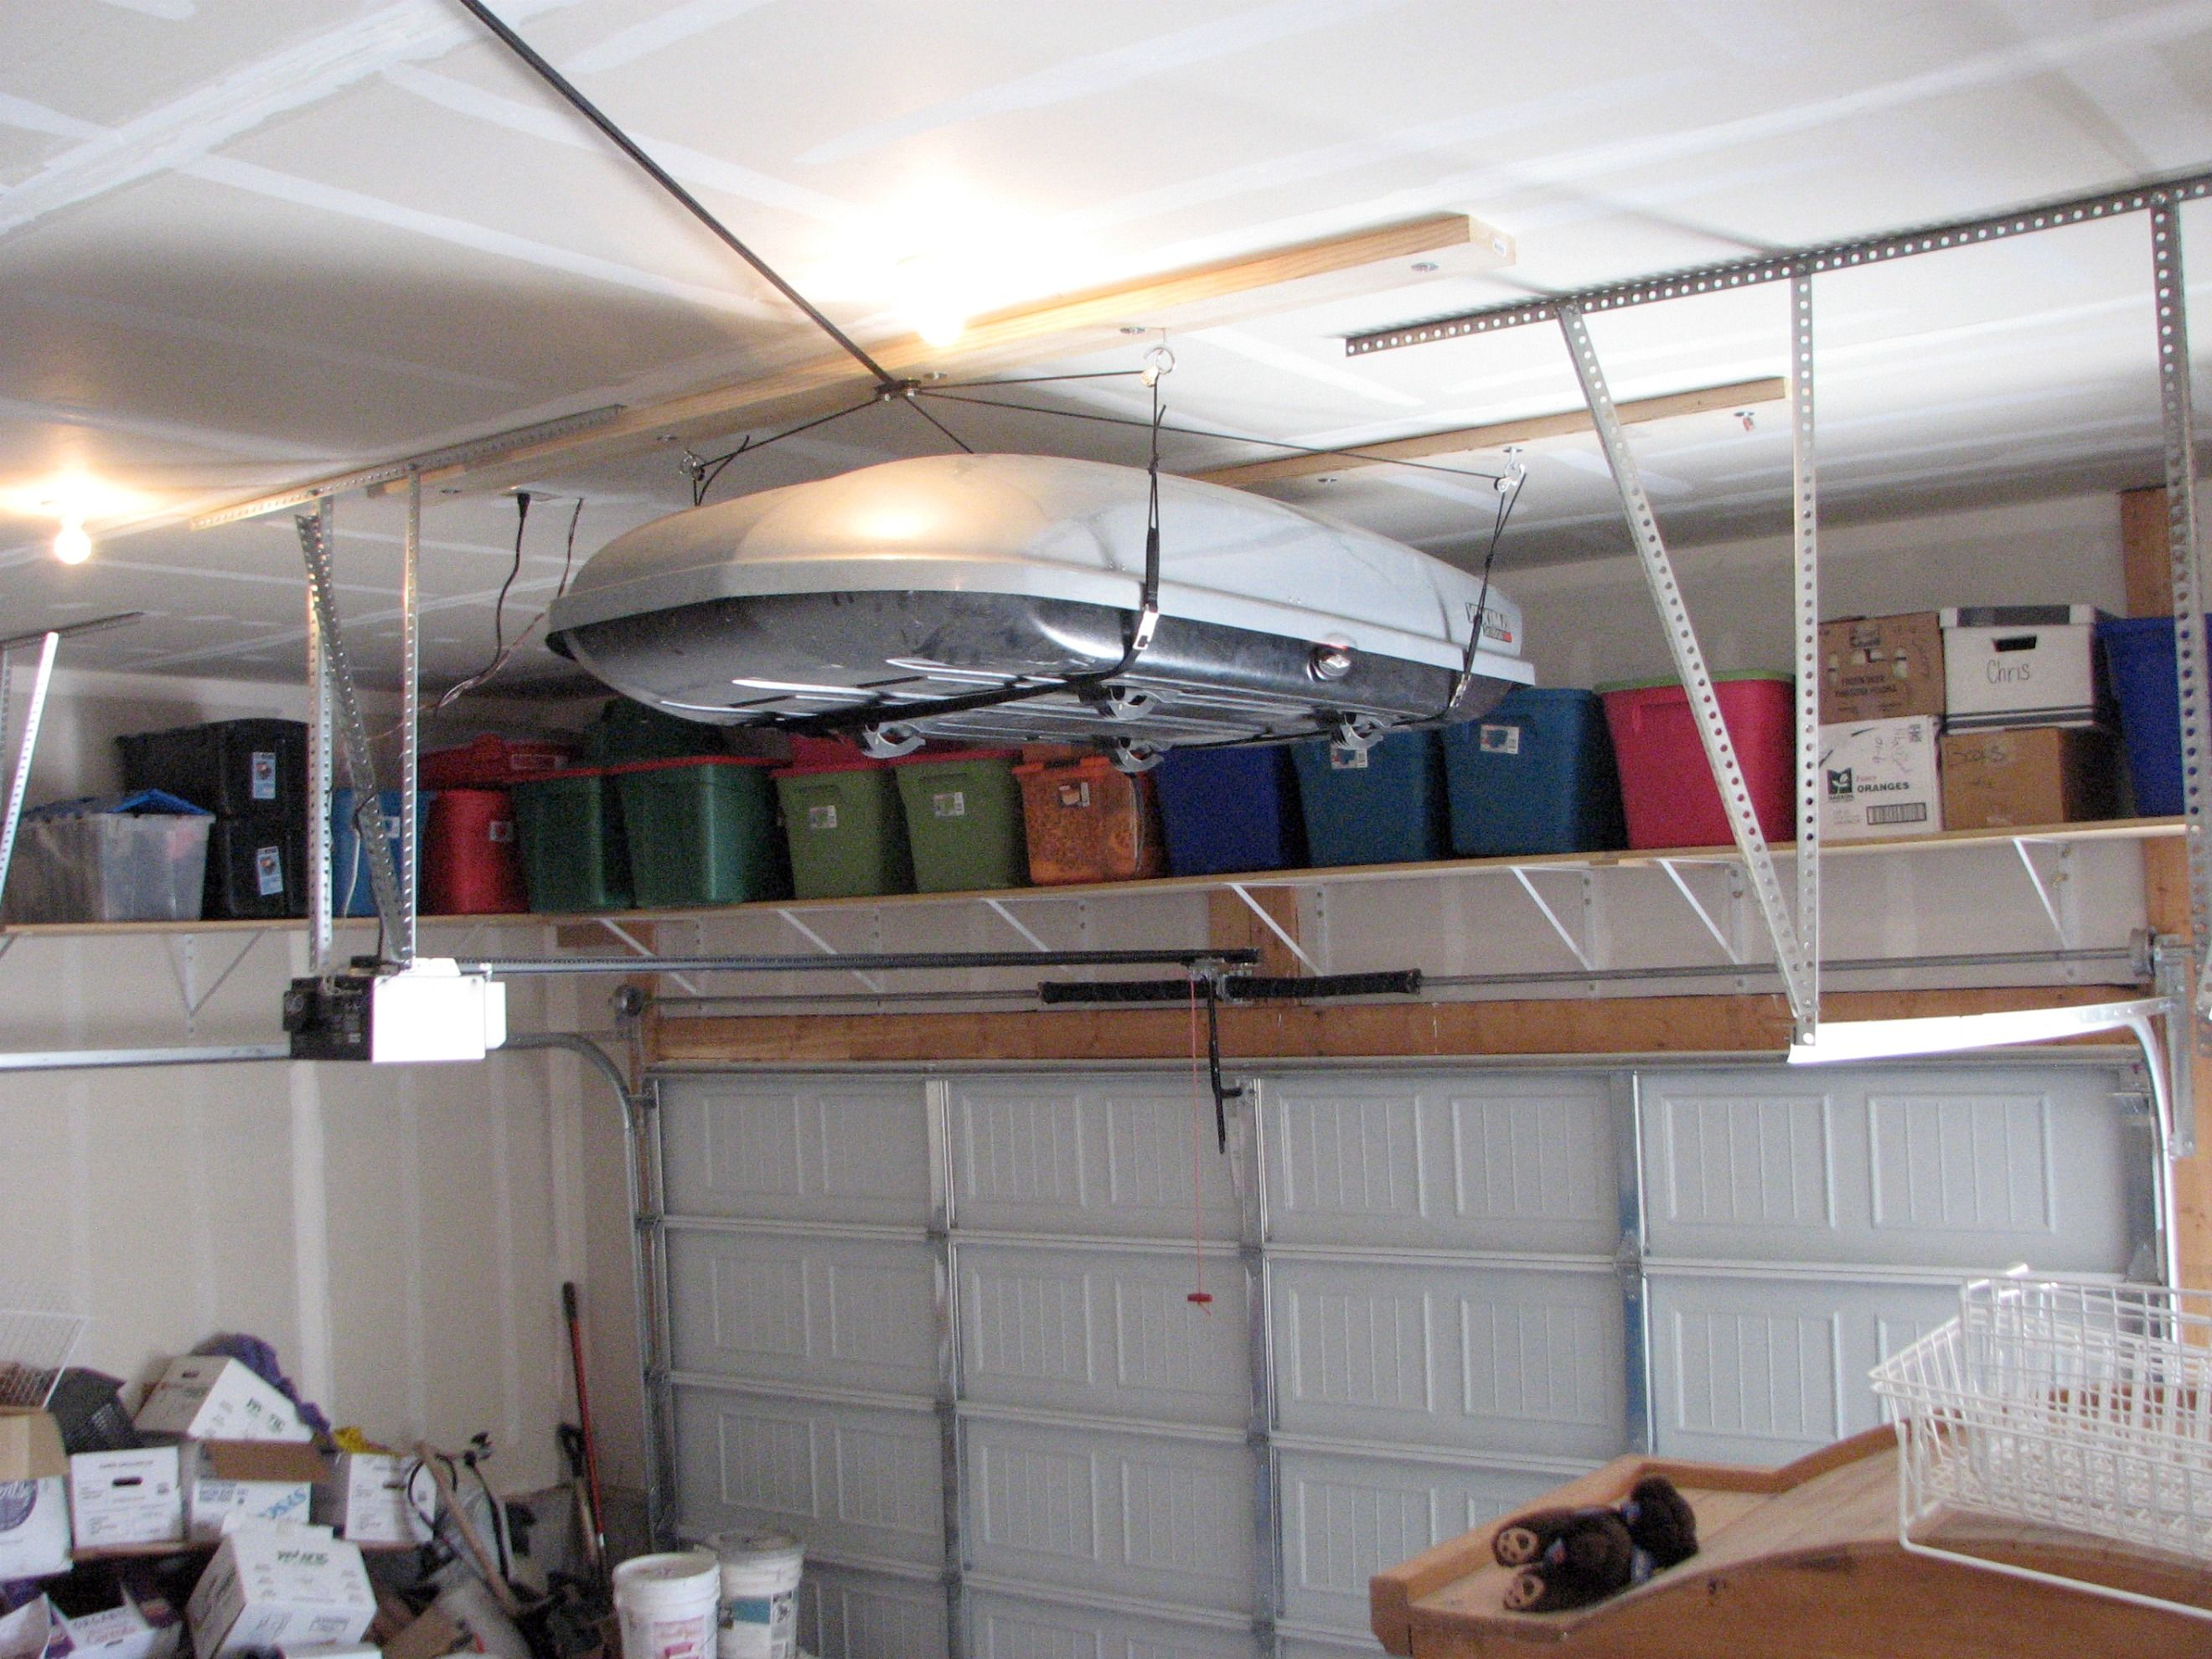 organizing do easy shelves shelving organization the things garage for shelf